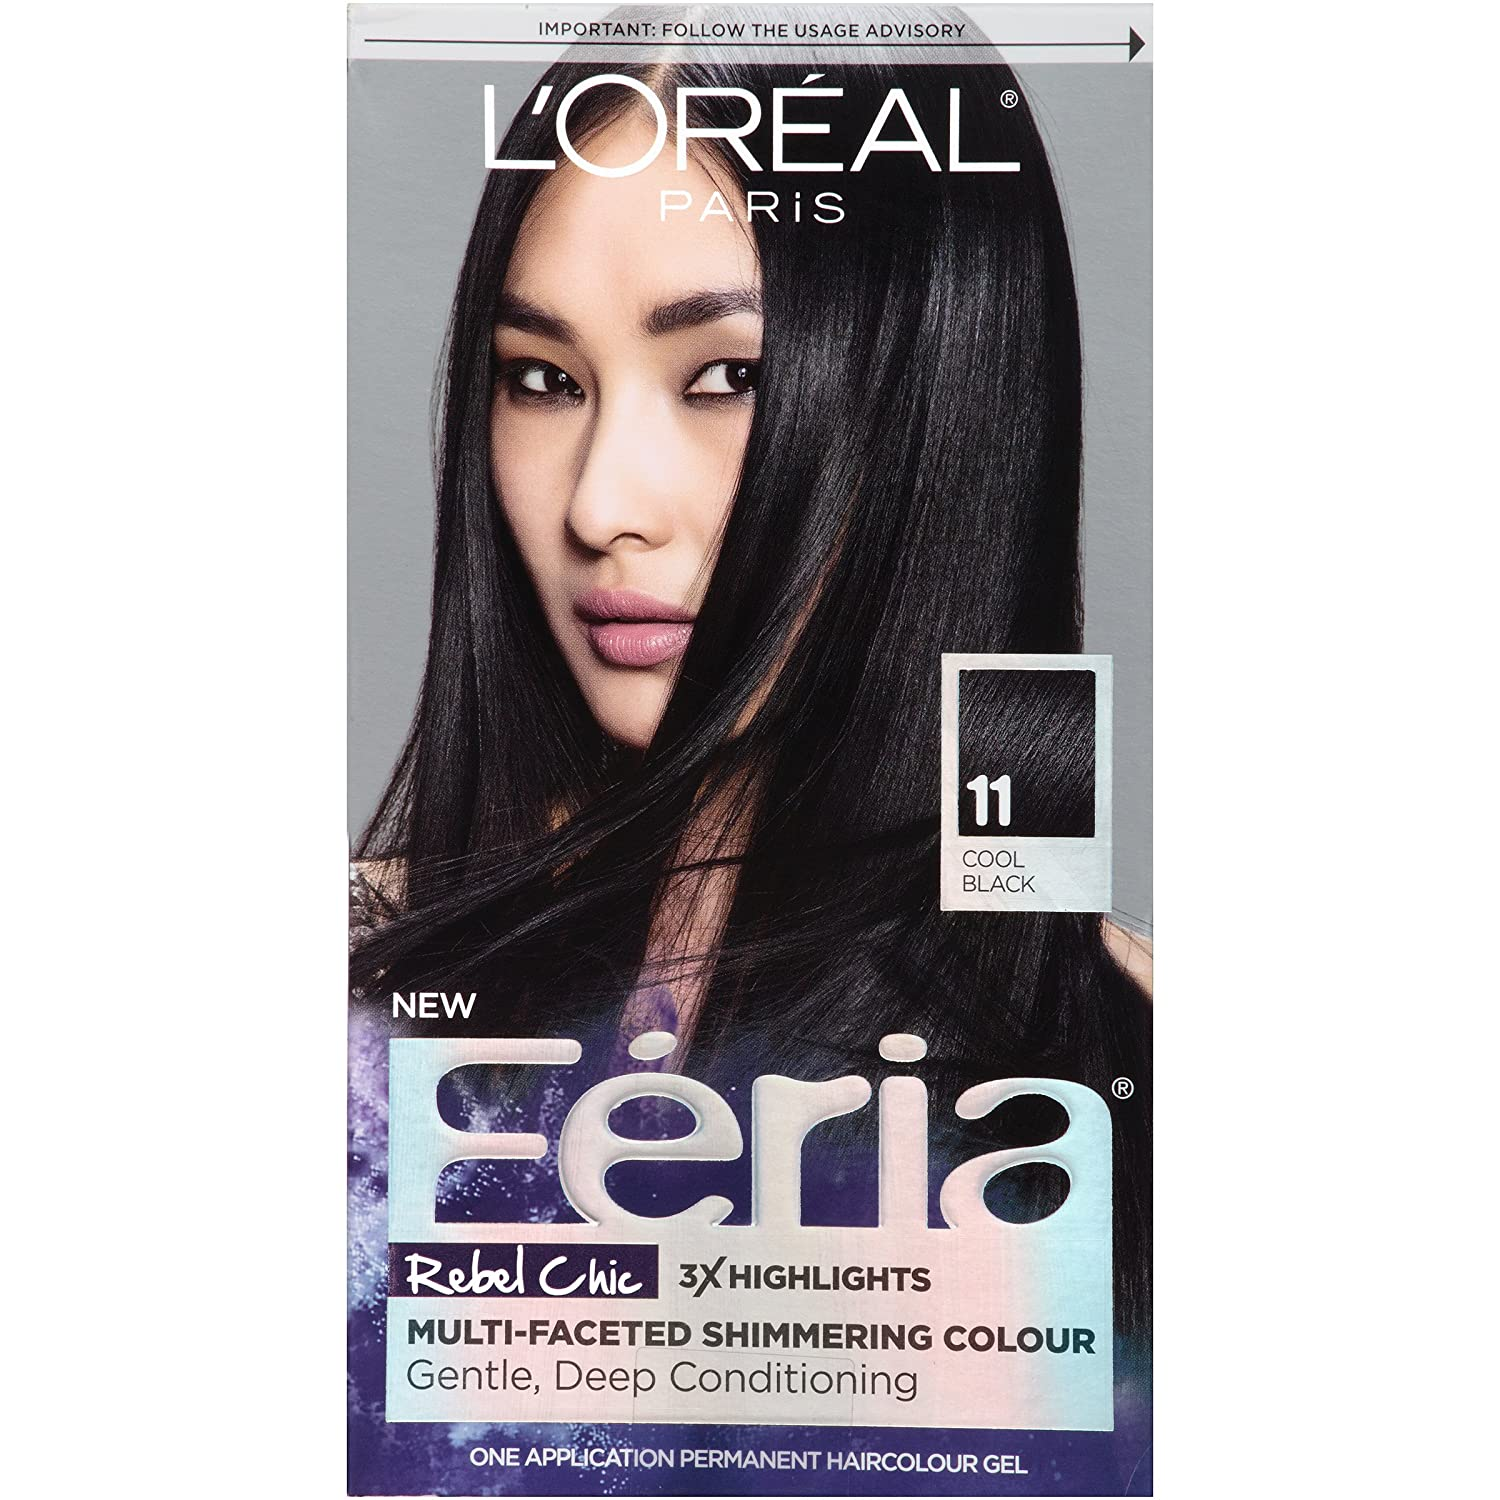 Loral Paris Feria Permanent Hair Color 11 Black Fixation Cool